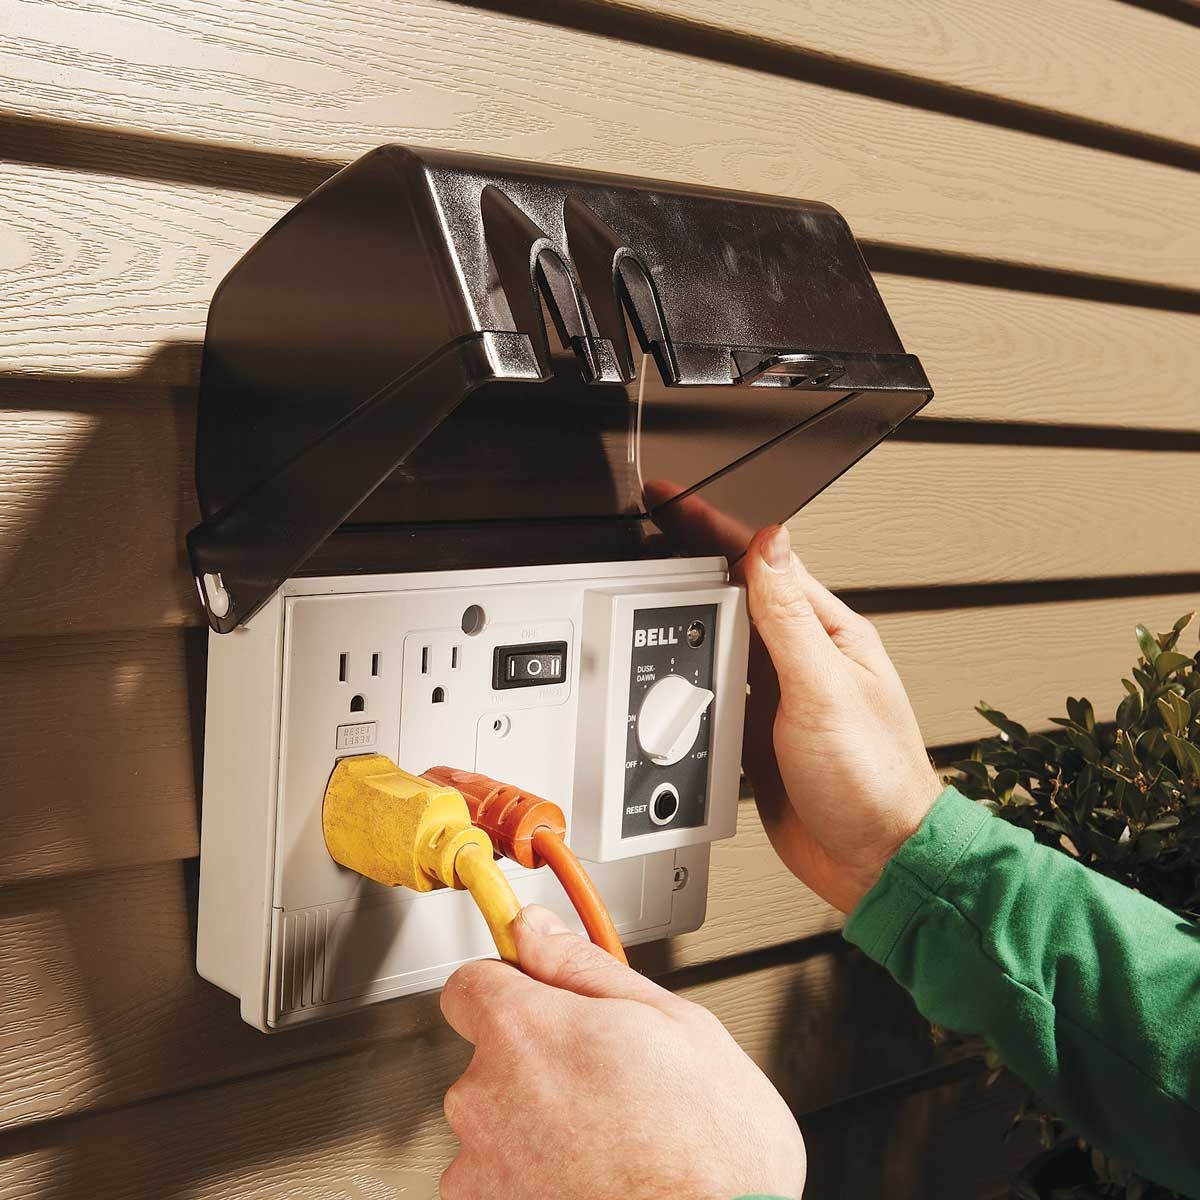 Outdoor Socket at Your Home